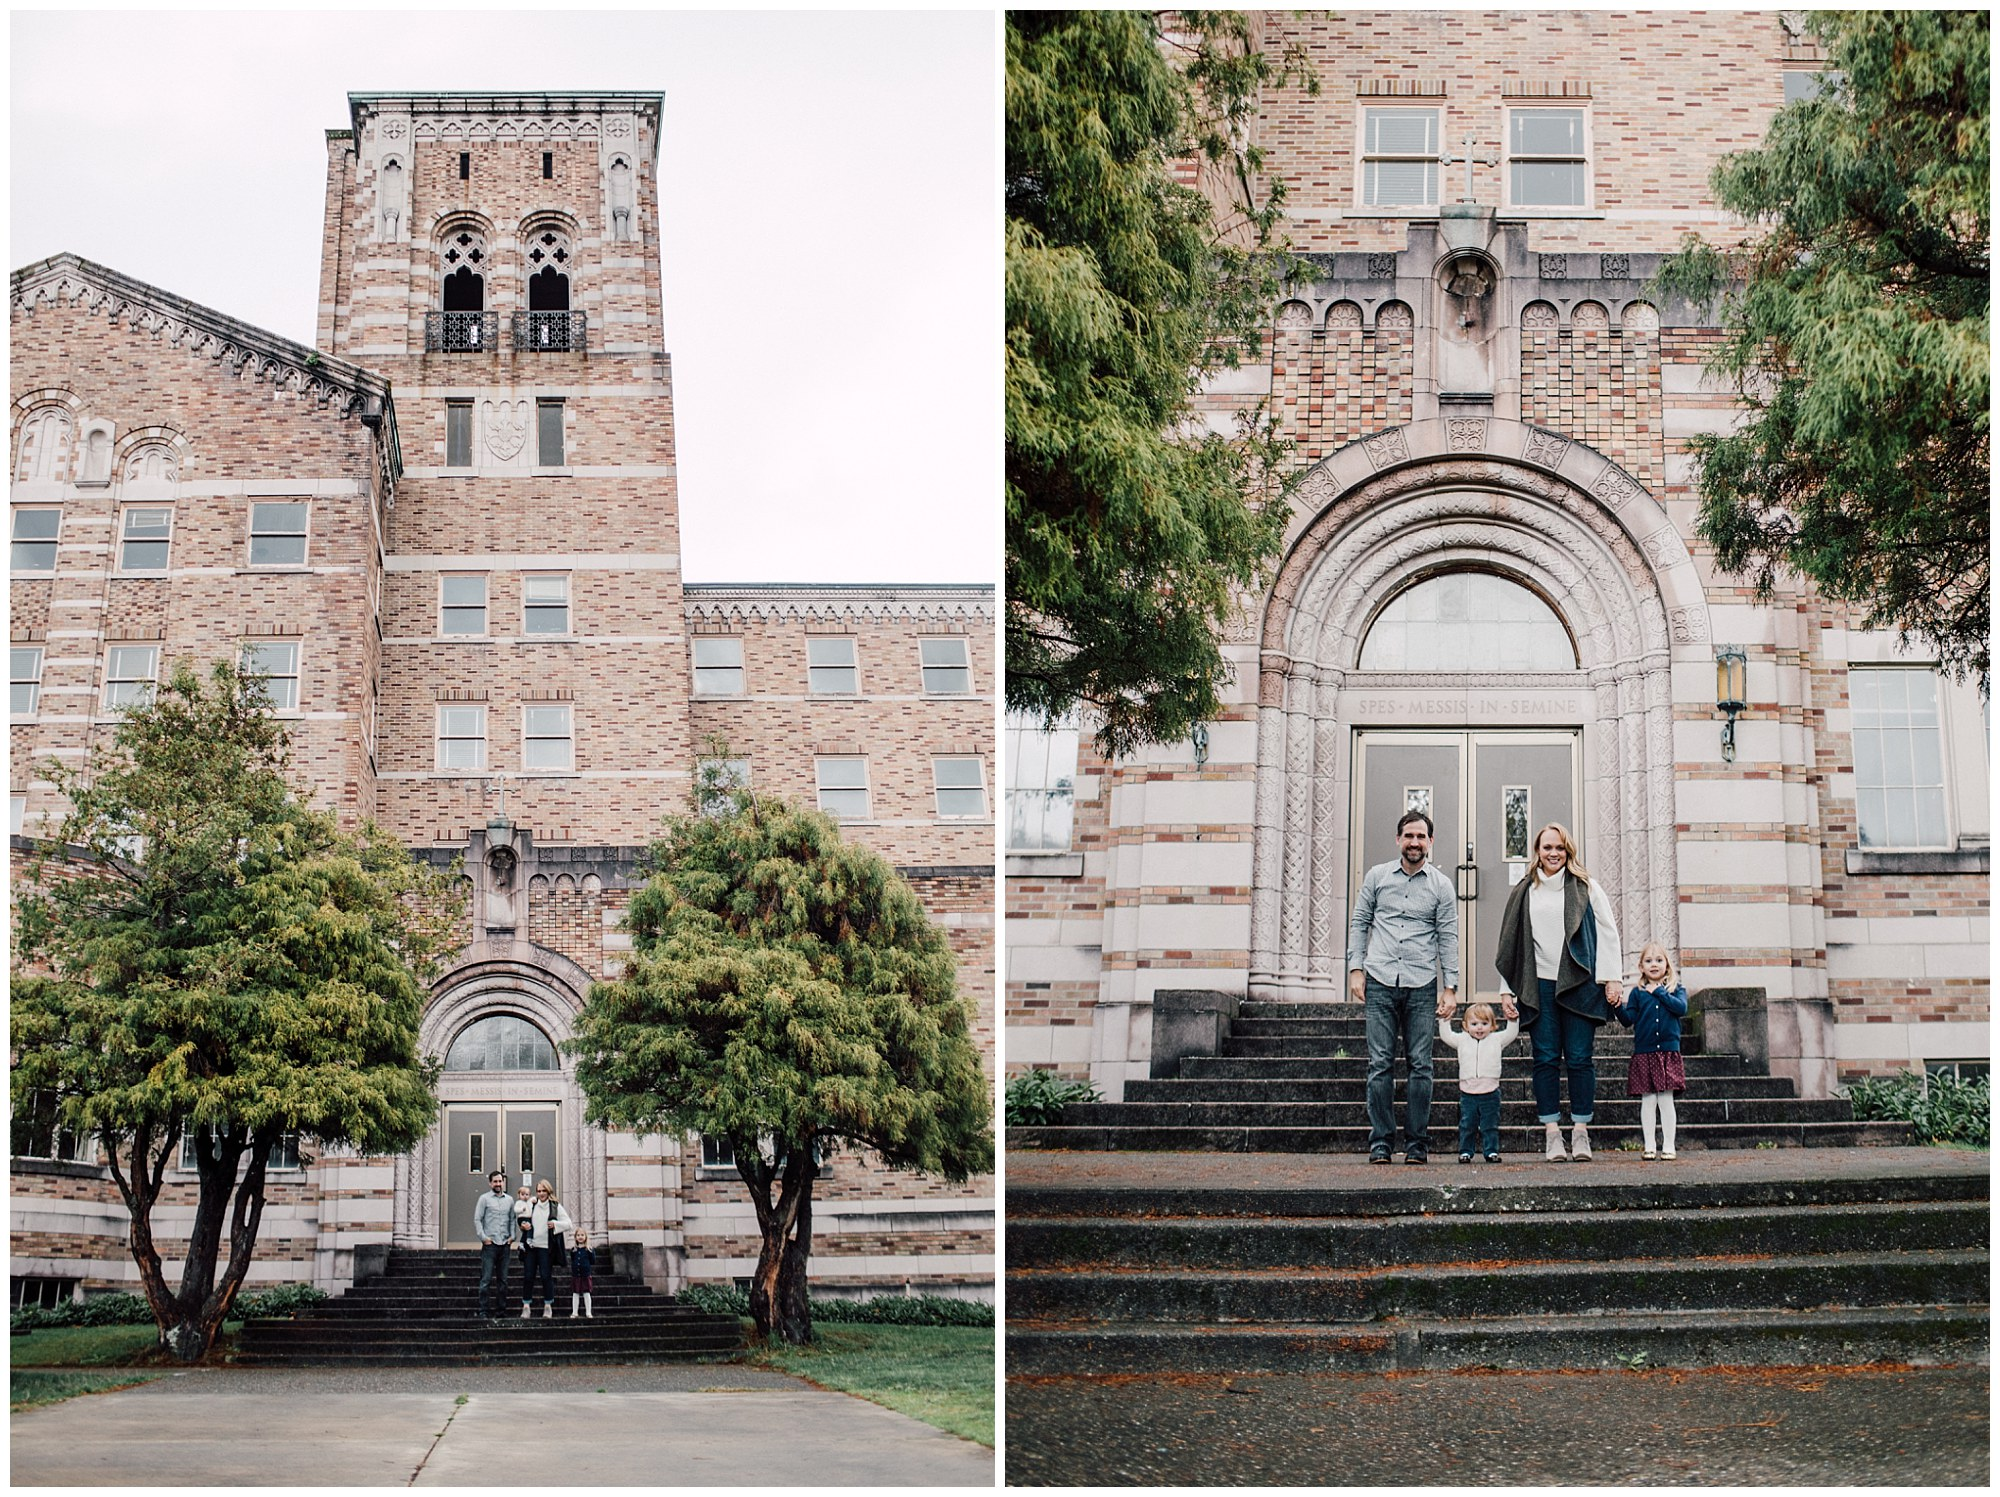 the Happy Film Company - St. Edwards Park - Seattle Family Photography - family portrait on steps outside brick building holding hands in a line